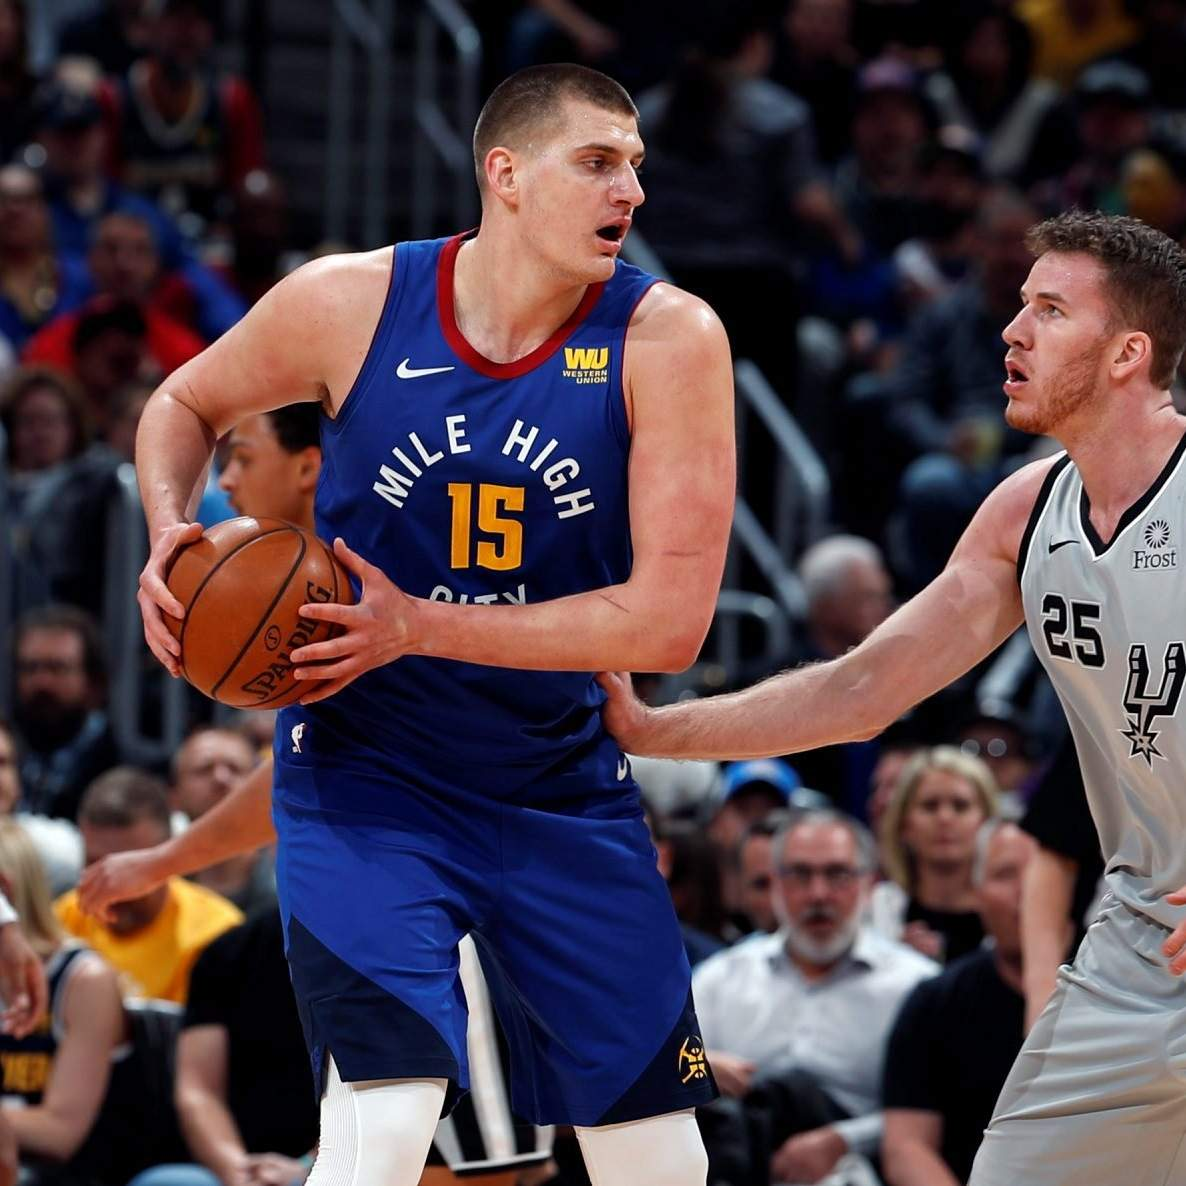 Nuggets Spurs Game: Nuggets Romp Spurs In Game 5